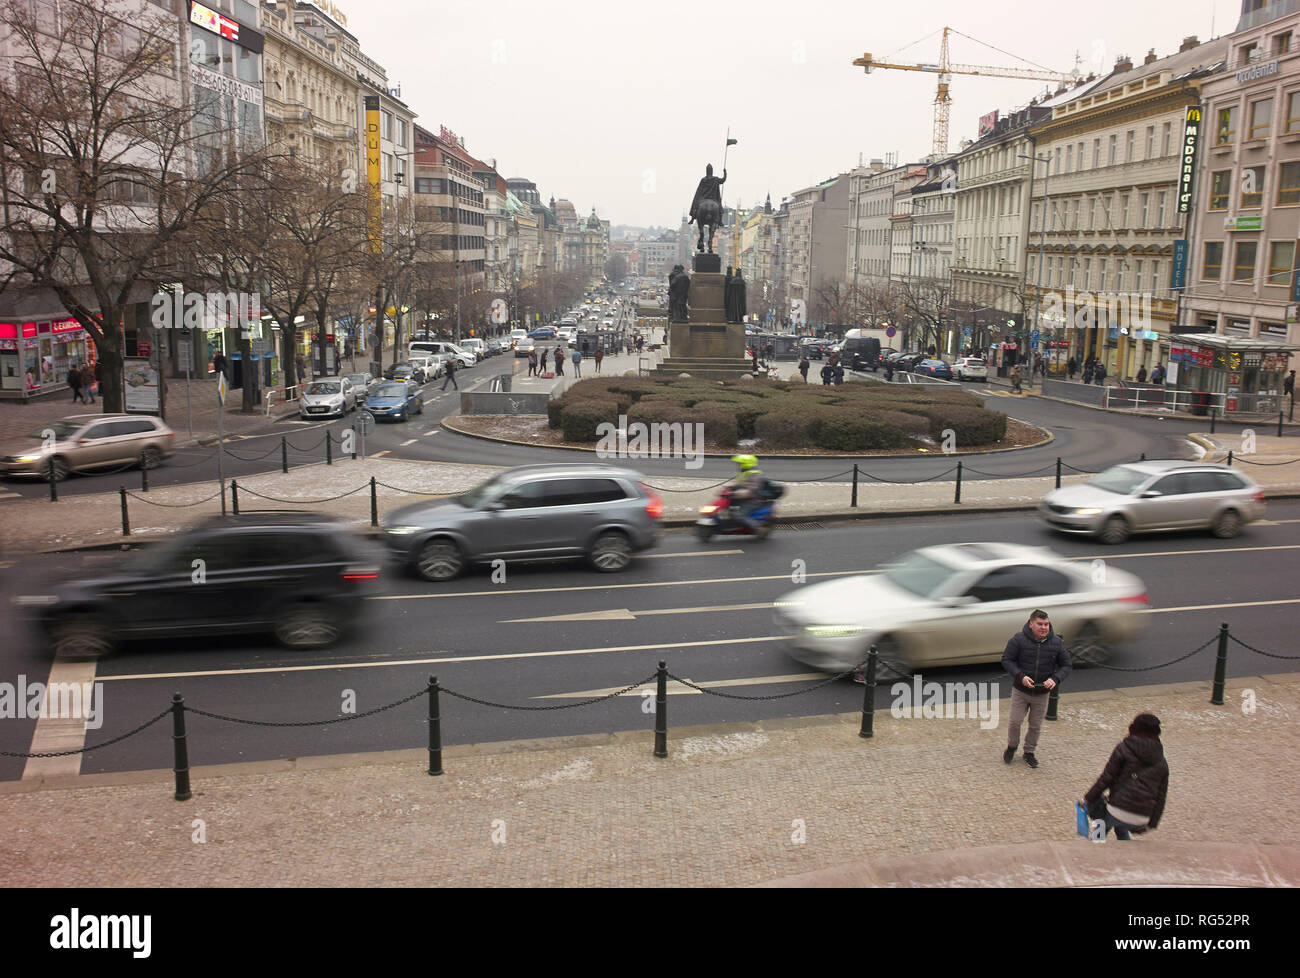 Prag, Czechia  24th Jan, 2019  Cars drive in the Czech capital  Car